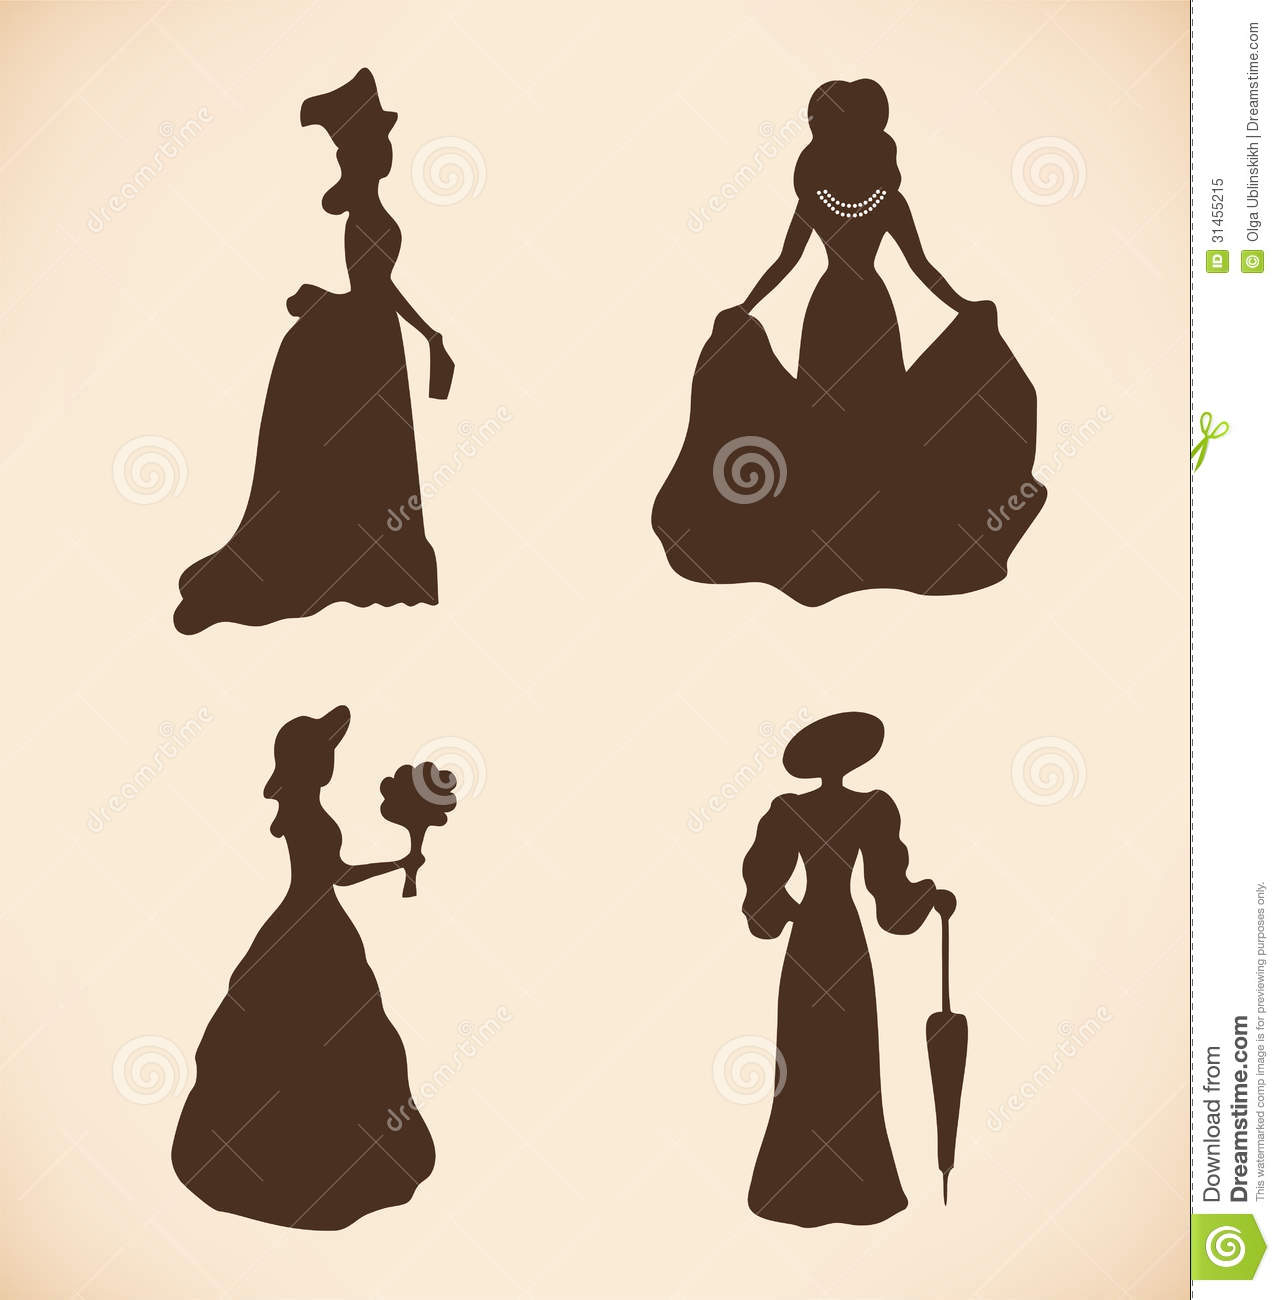 black isolated women silhouettes vintage icons co royalty